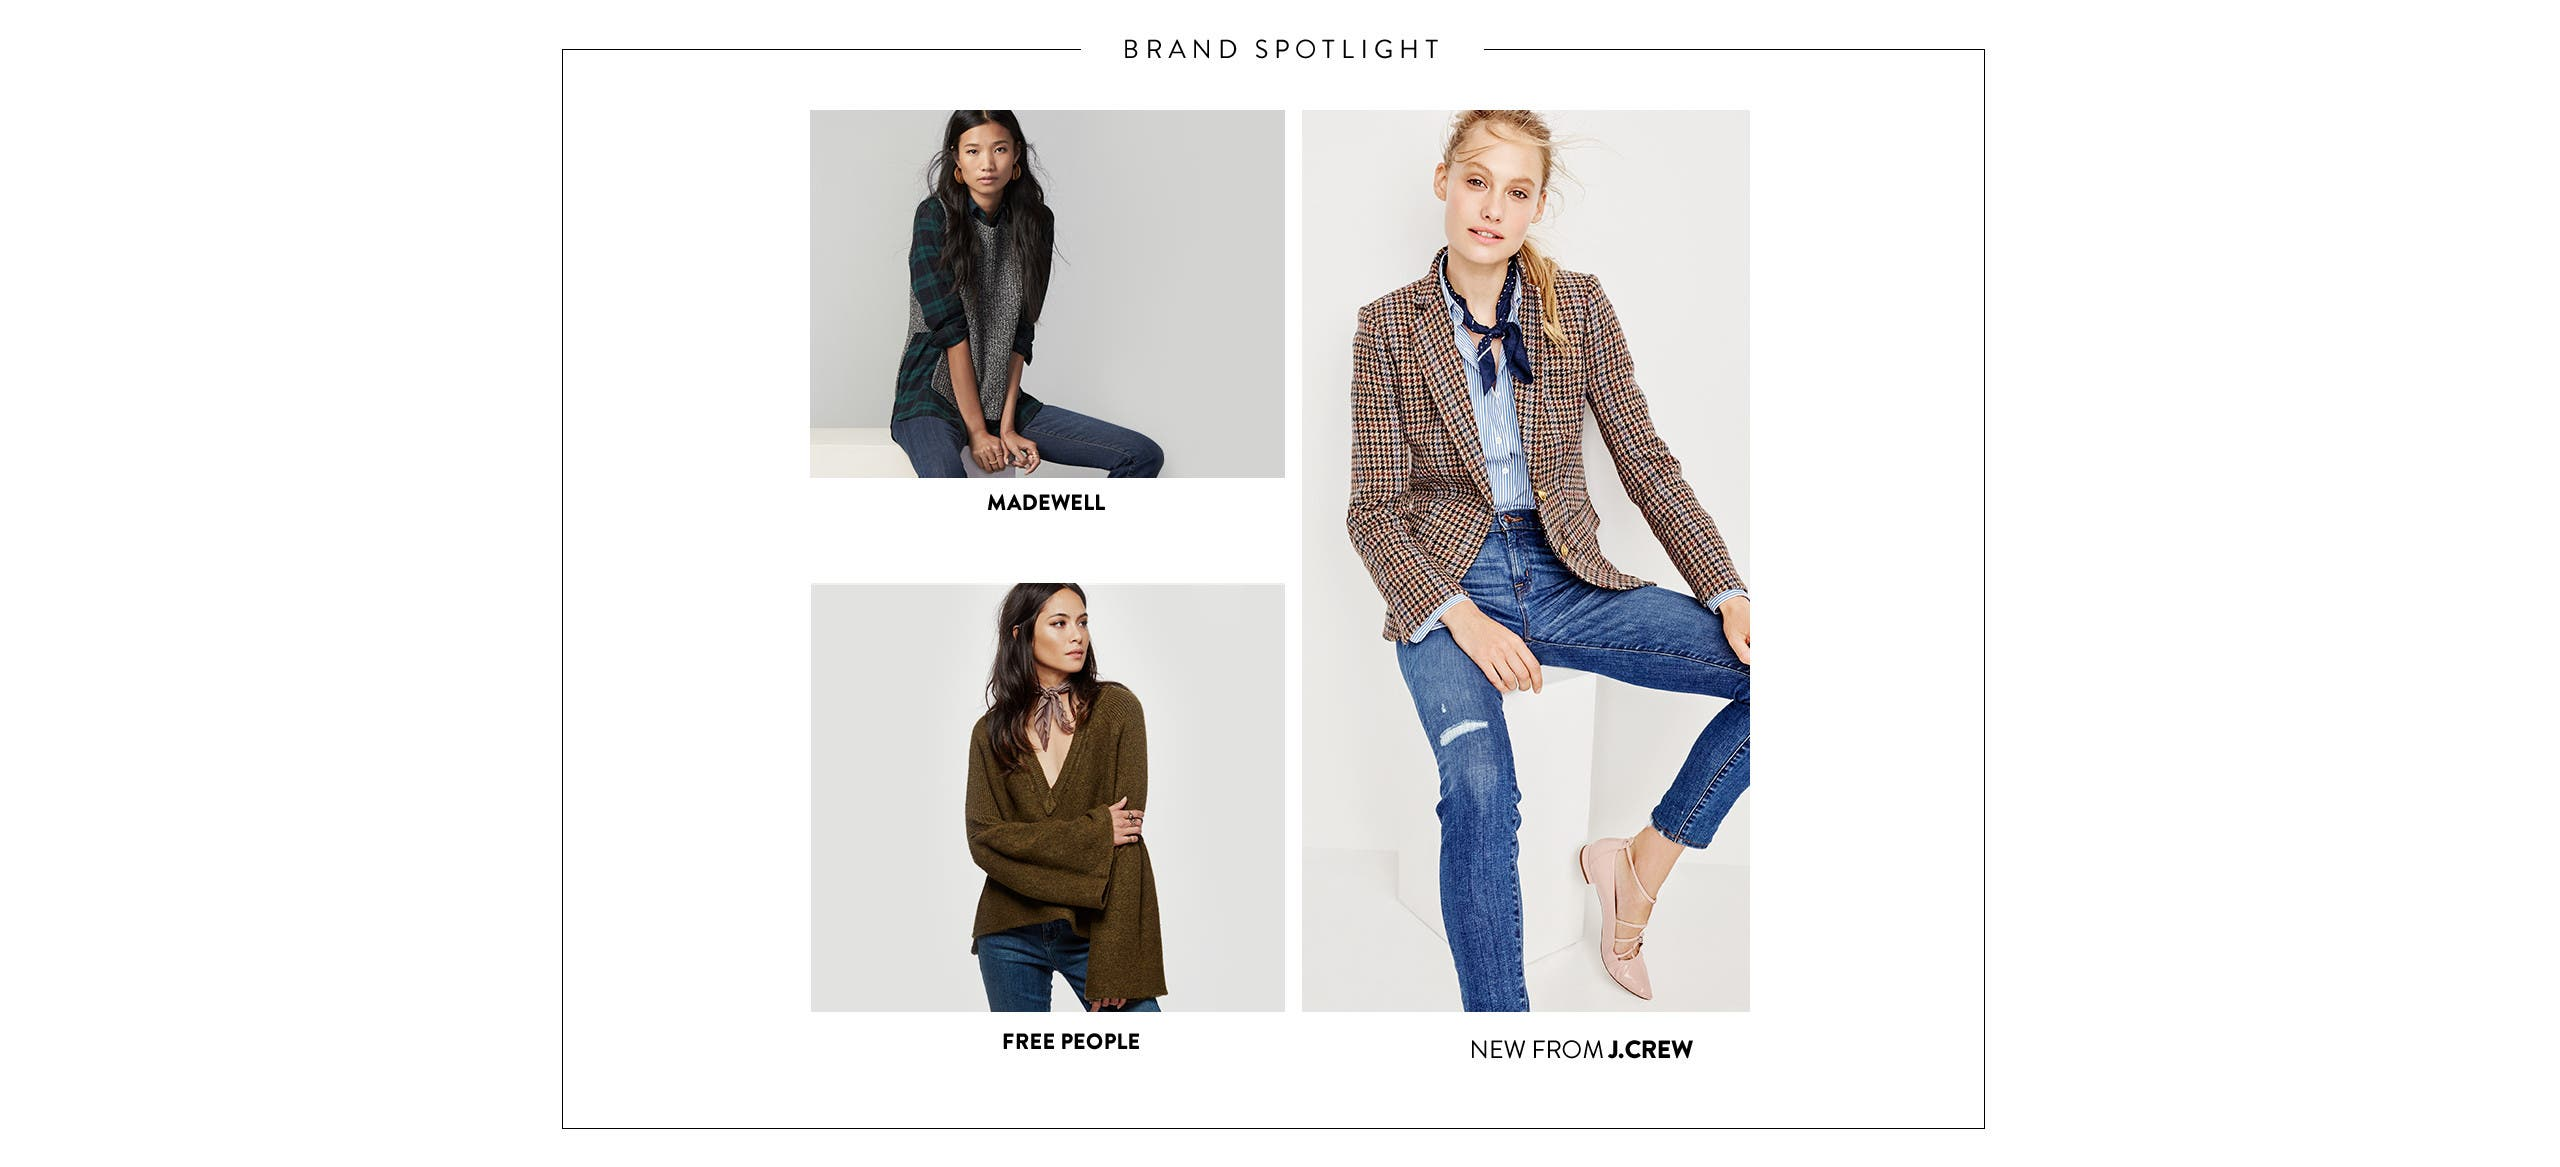 Madewell women's clothing. Free People women's clothing. J.Crew women's clothing.